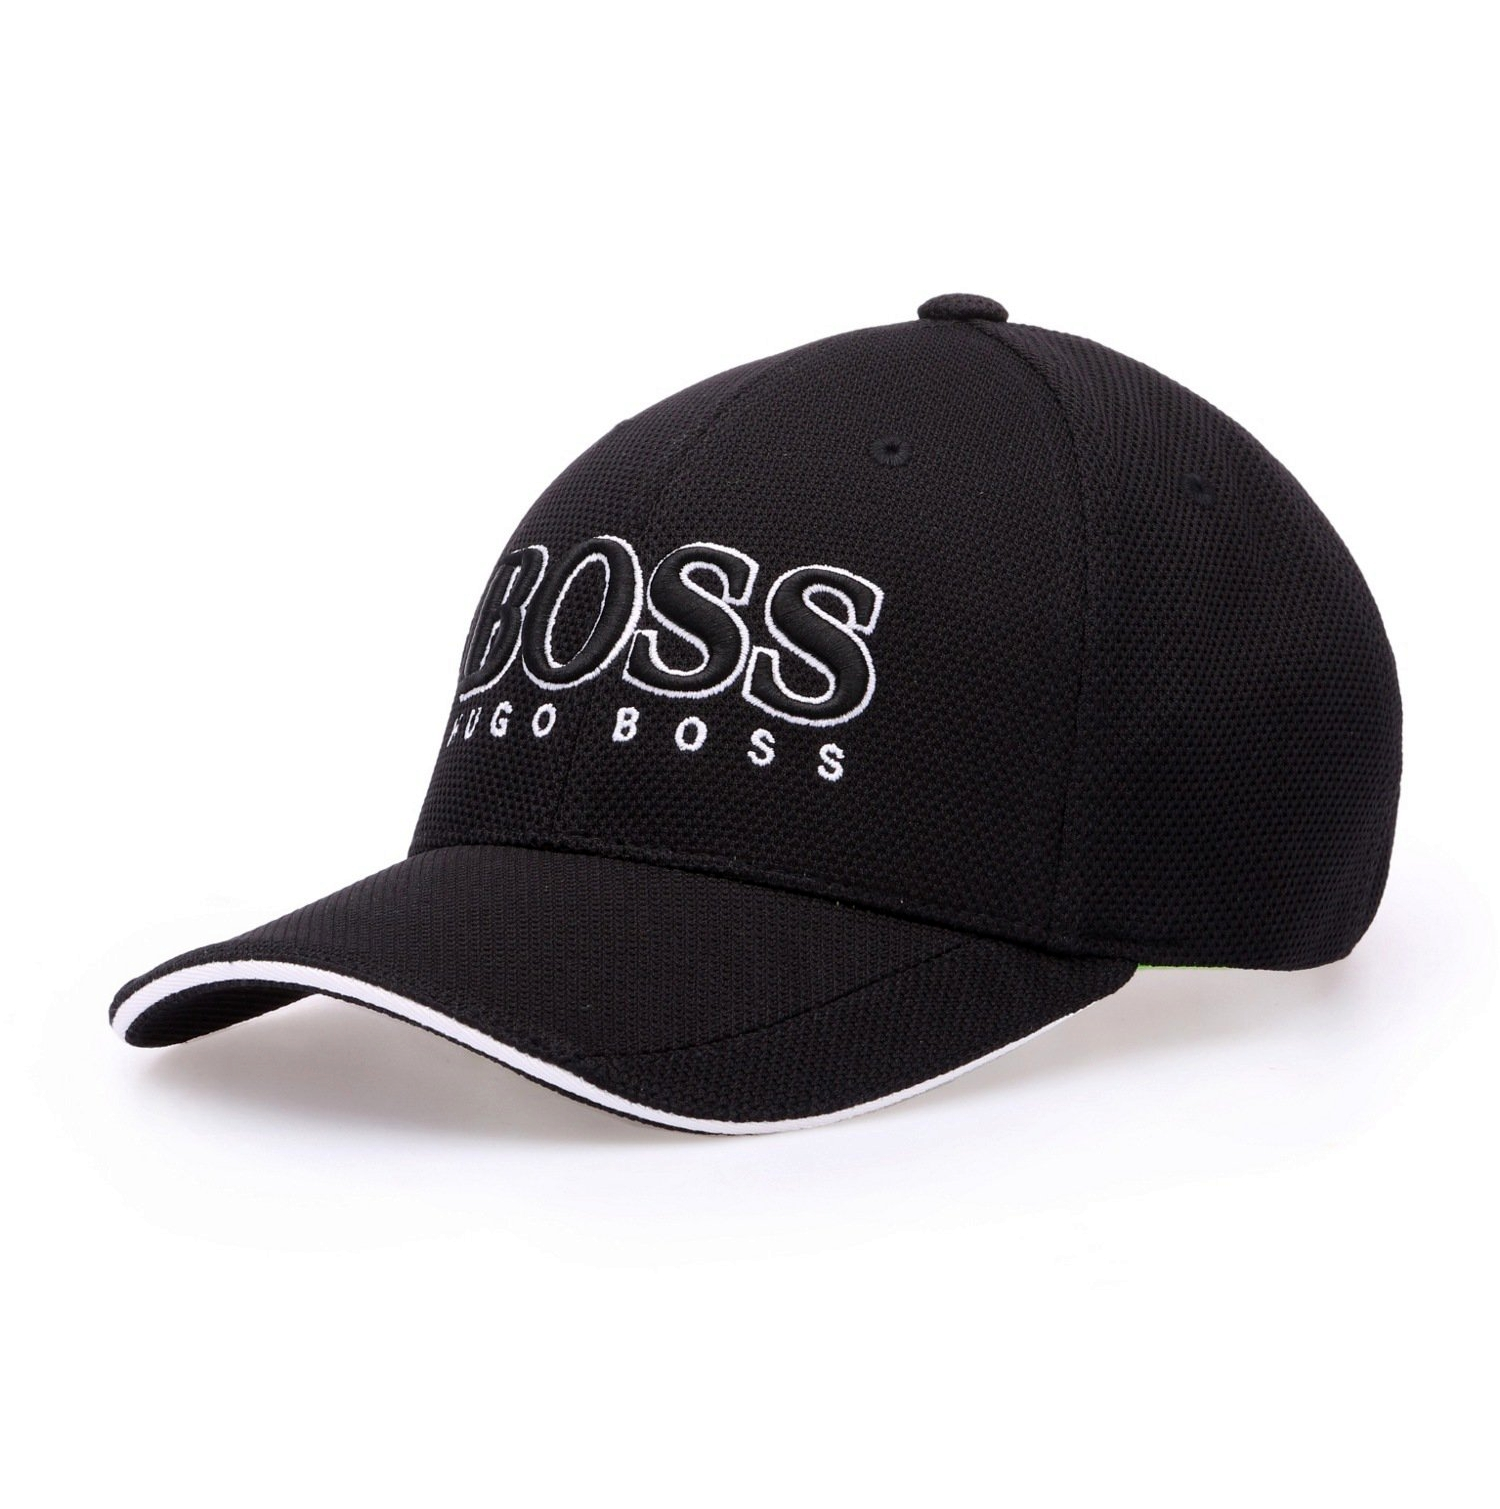 HUGO BOSS Cappellino da baseball in pique tecnico NERO Modello Cap US - 50251244